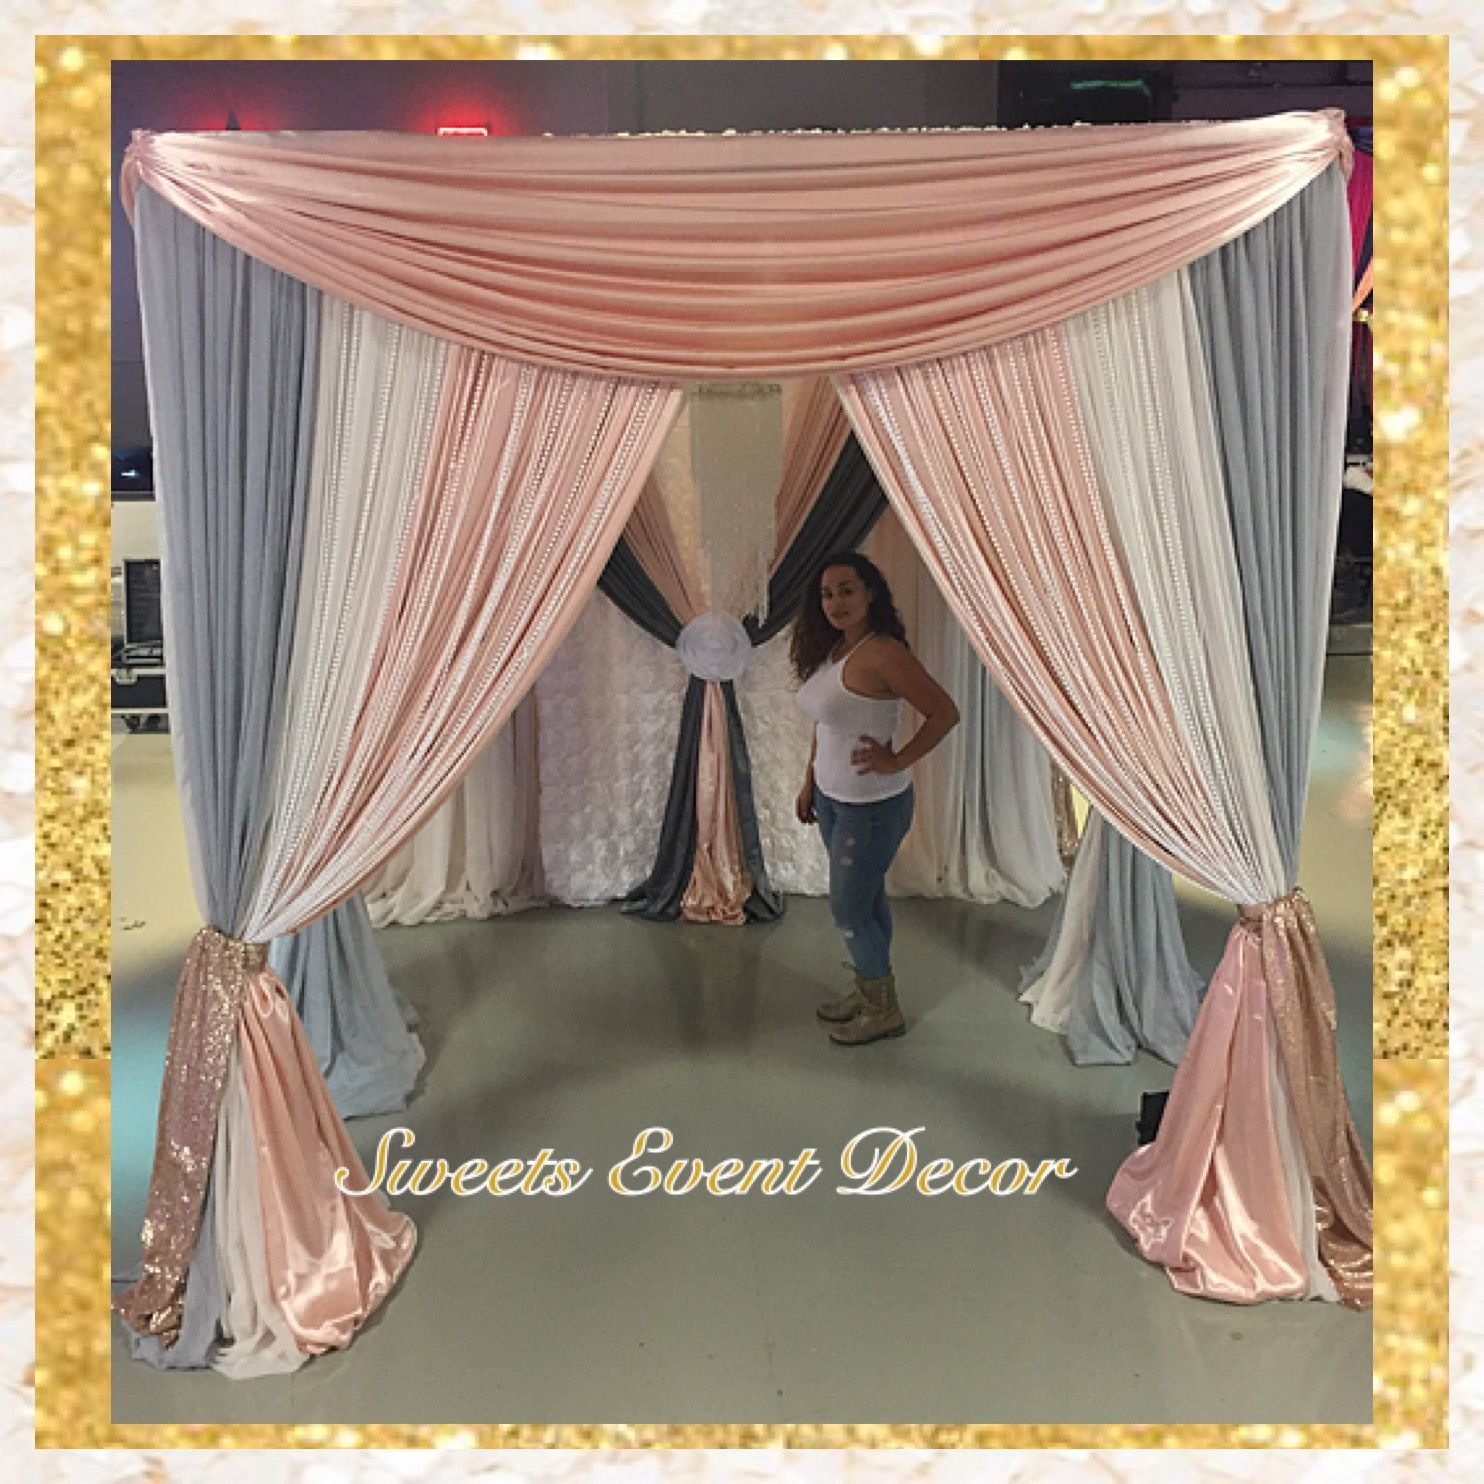 wedding canopy Wedding Canopy Decor by Sweets Event Decor Tent Draping Fabric Draping Fabric